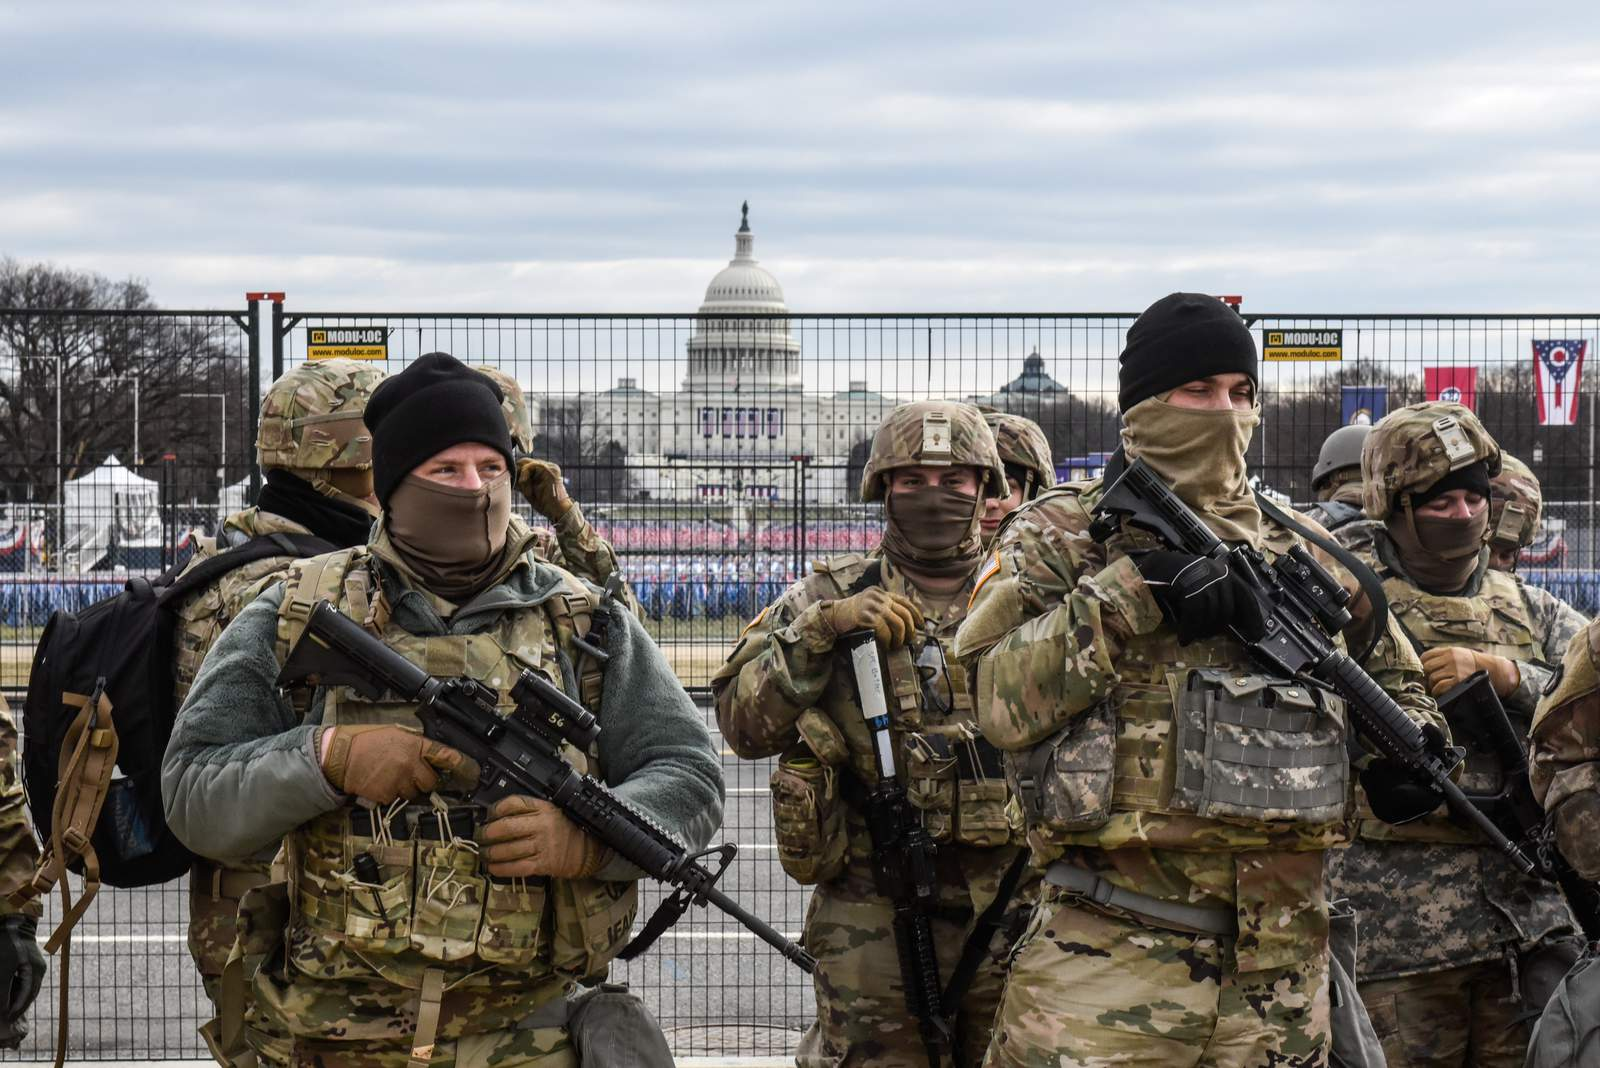 Members of the National Guard patrol the National Mall on January 19, 2021 in Washington, DC. Tight security measures are in place for Inauguration Day due to greater security threats after the attack on the U.S. Capitol on January 6. (Photo by Stephanie Keith/Getty Images)